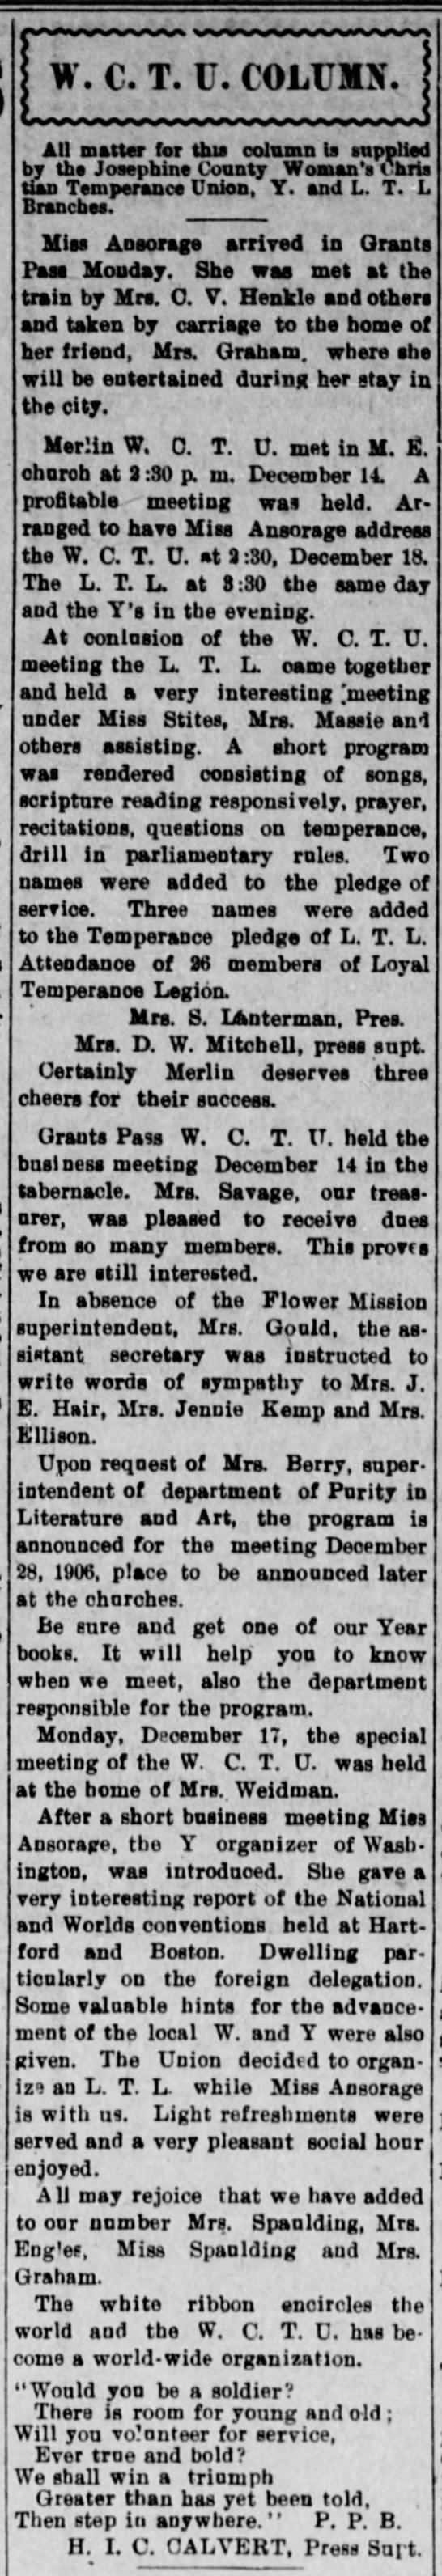 Weekly Rogue River Courier (Grants Pass, OR) 21 Dec 1906 p7 c3